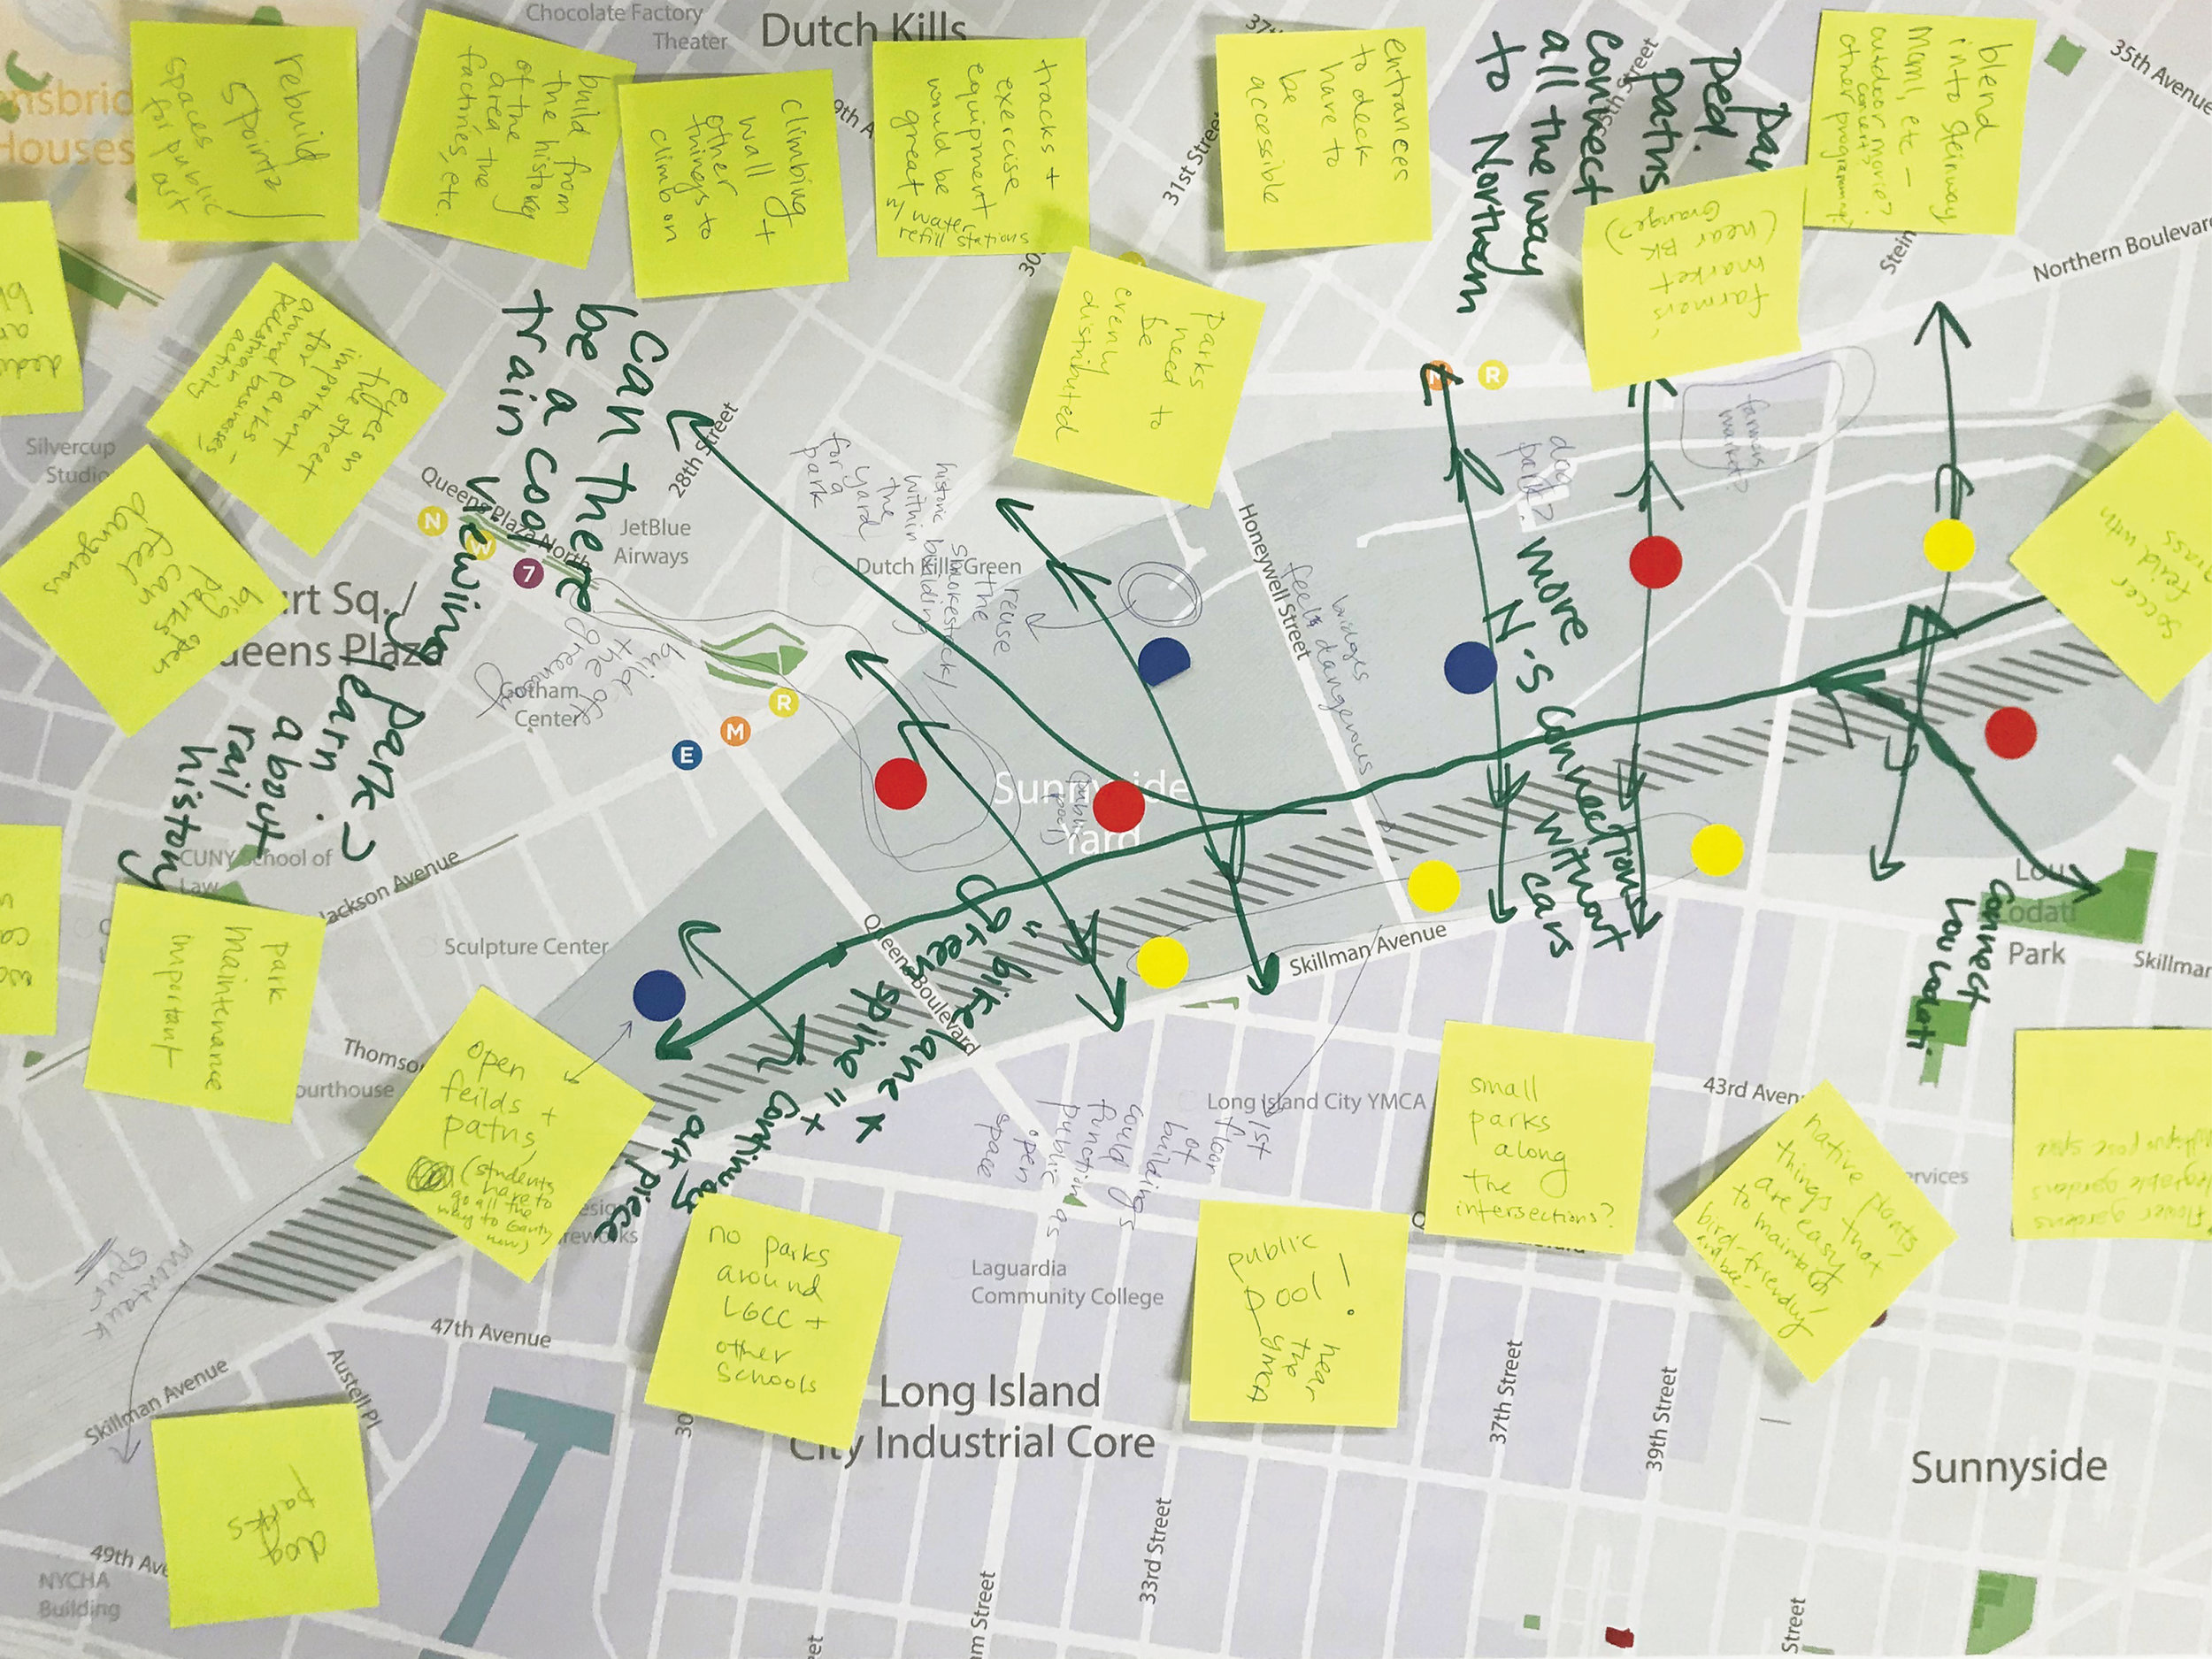 SSY_Public Workshop Findings Summary Open Space Map3.jpg